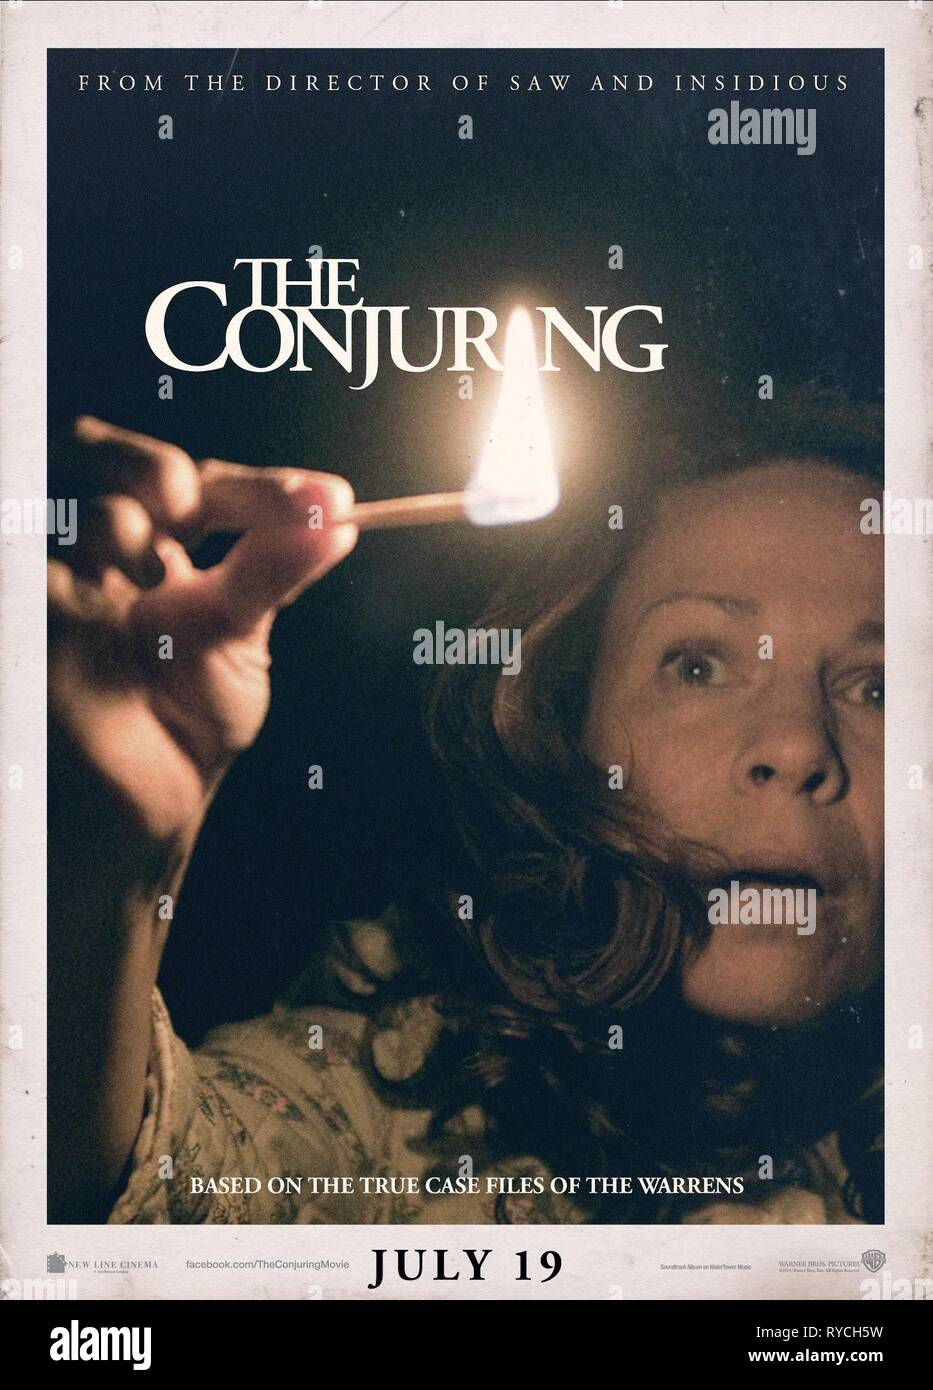 LILI TAYLOR POSTER, THE CONJURING, 2013 - Stock Image